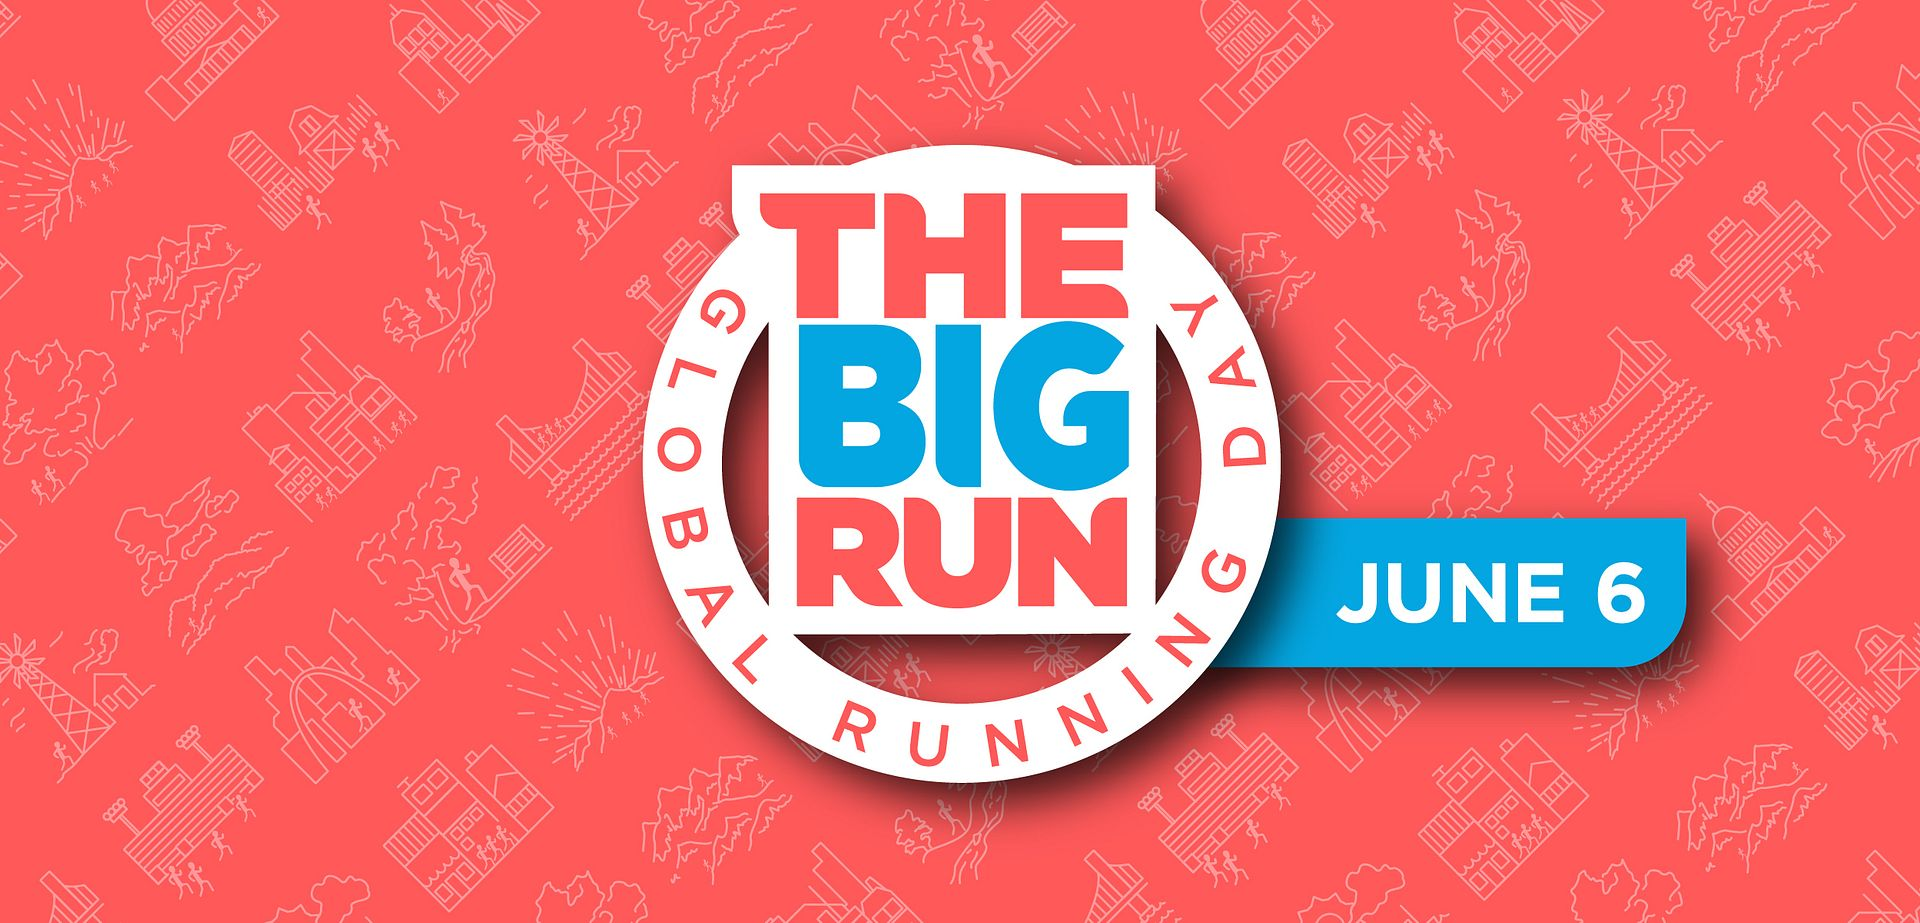 The Big Run logo